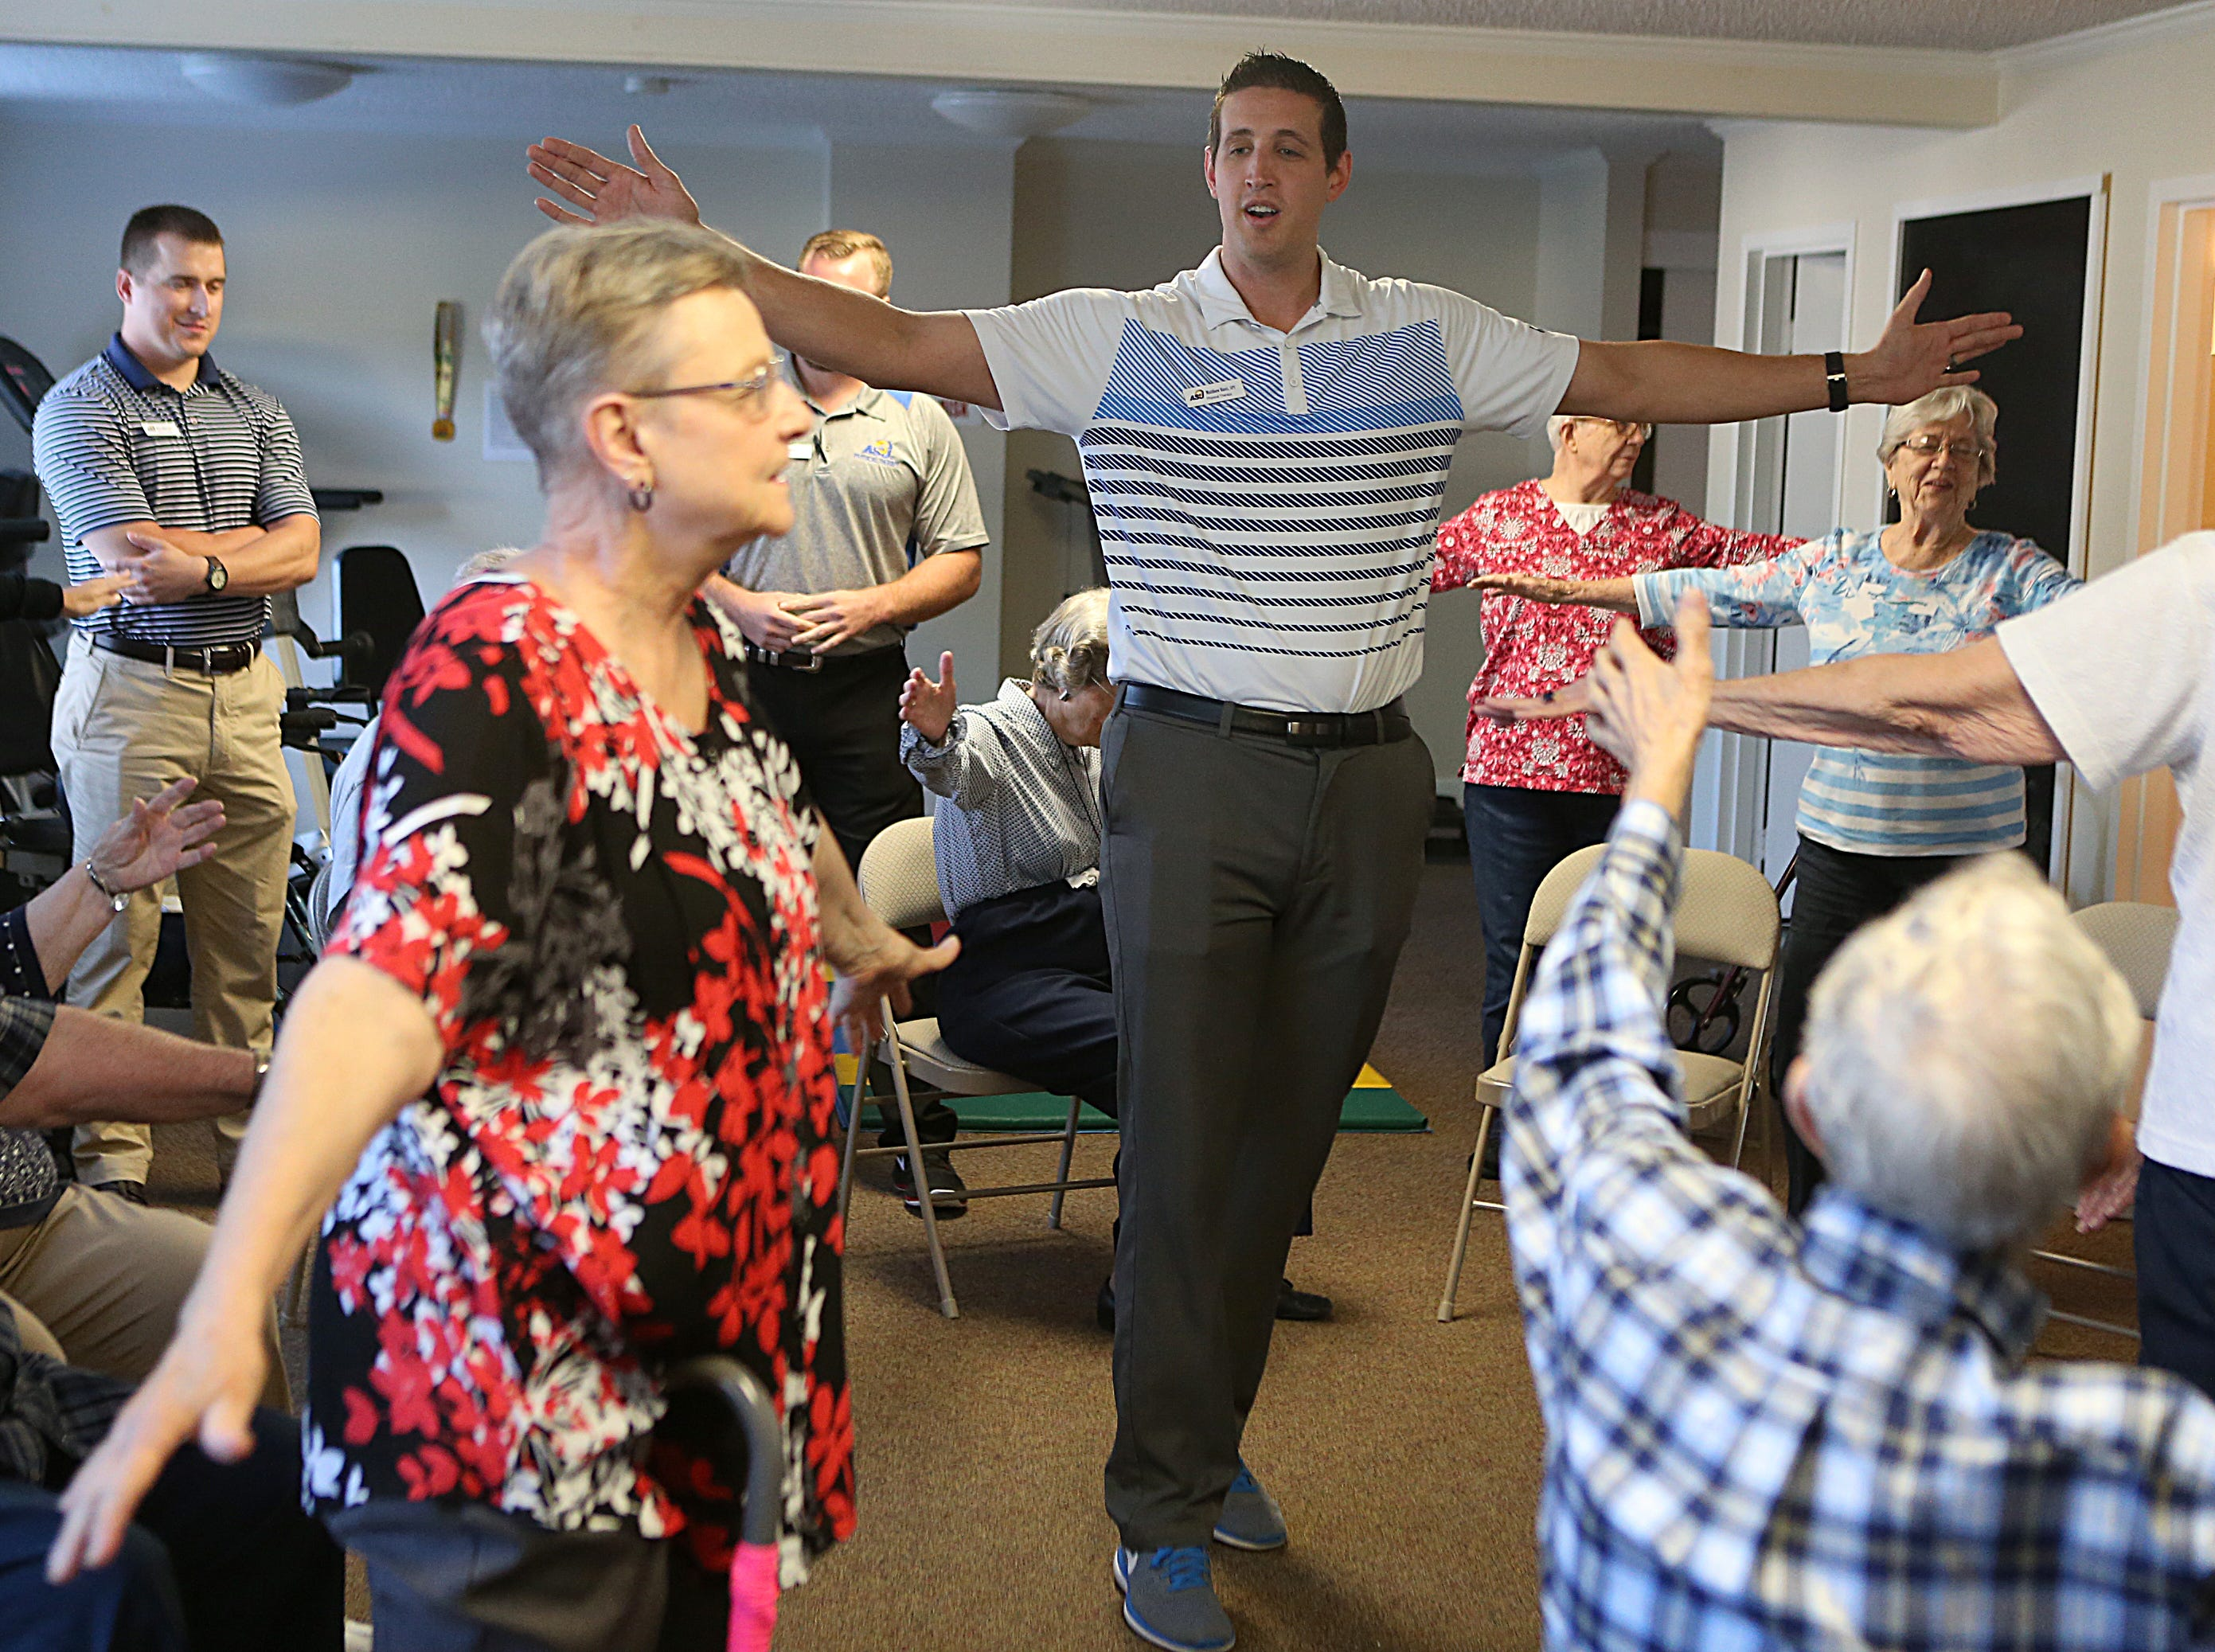 Matt Ricci, a physical therapy student at Angelo State University, does arm exercises with residents during a Balance and Fall Risk Reduction Program for seniors at Baptist Retirement Community Monday, Oct. 1, 2018.